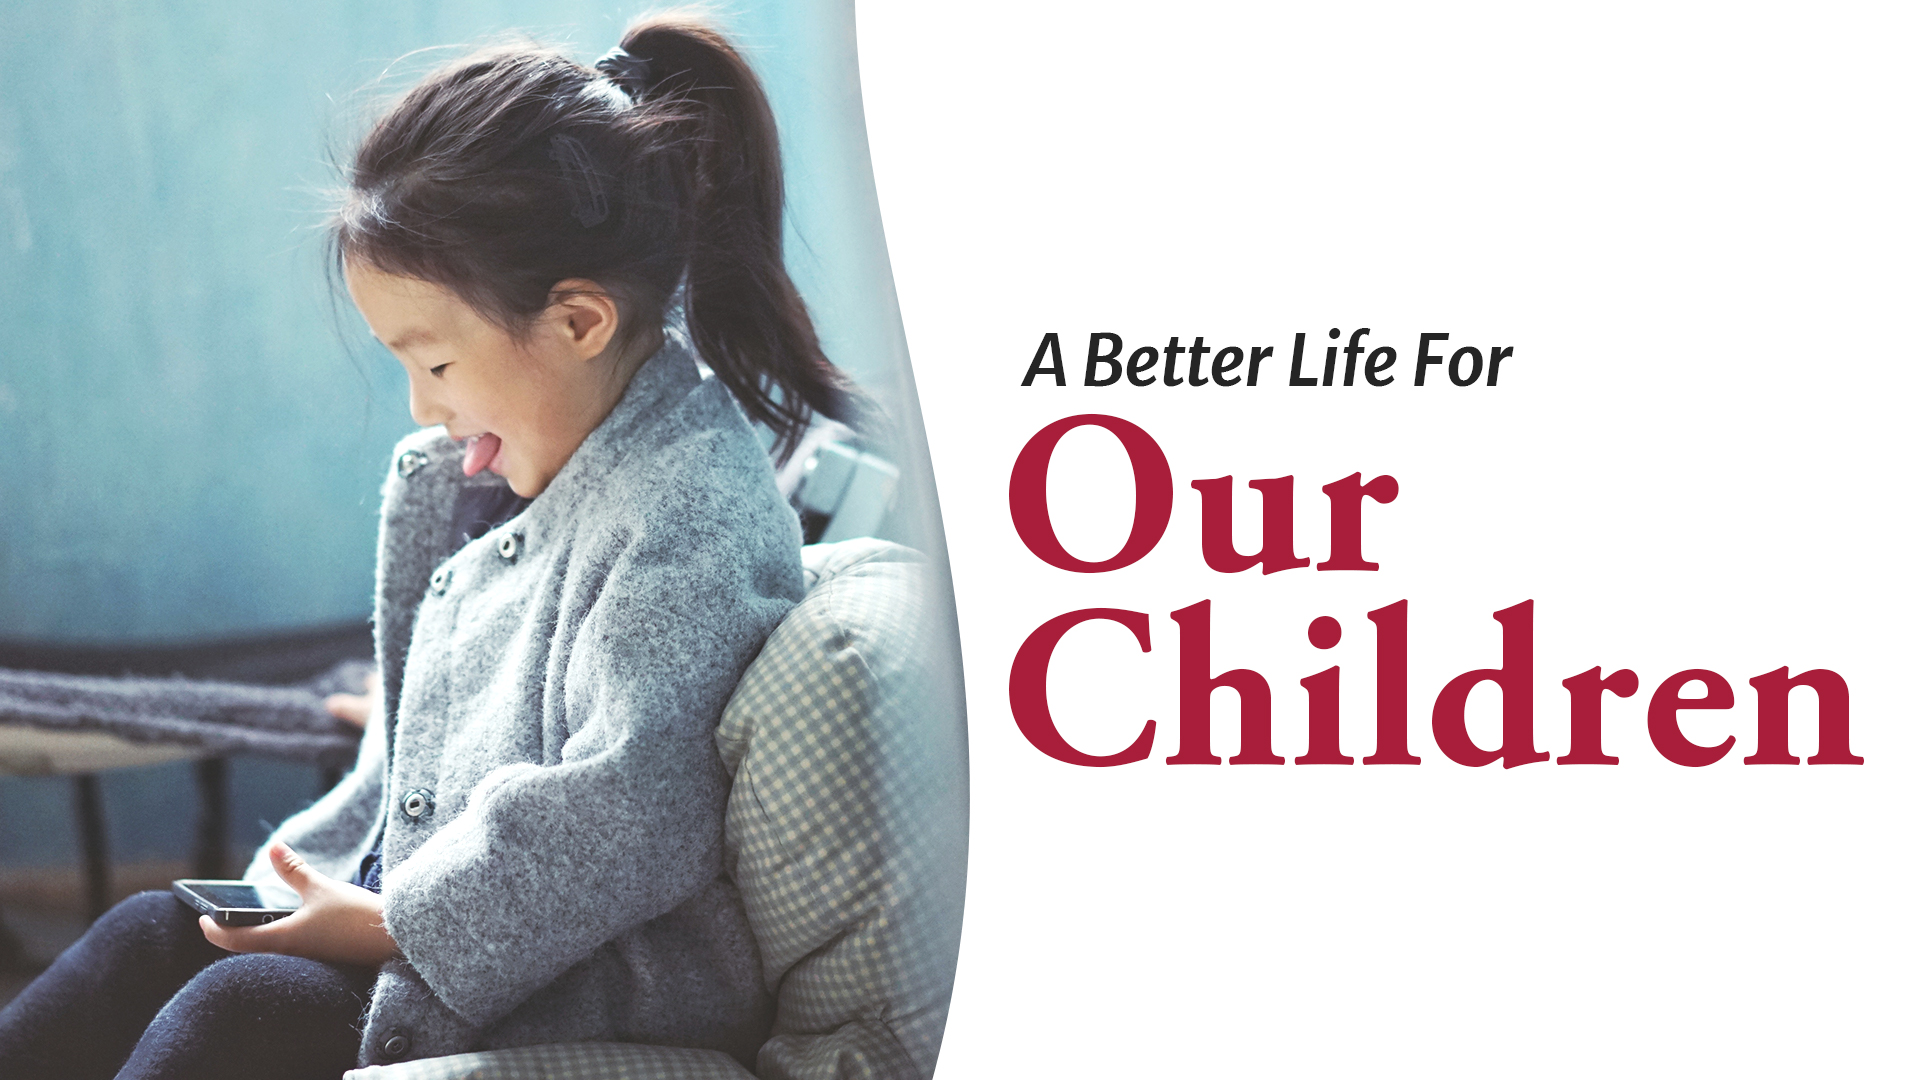 A Better Life For Our Children